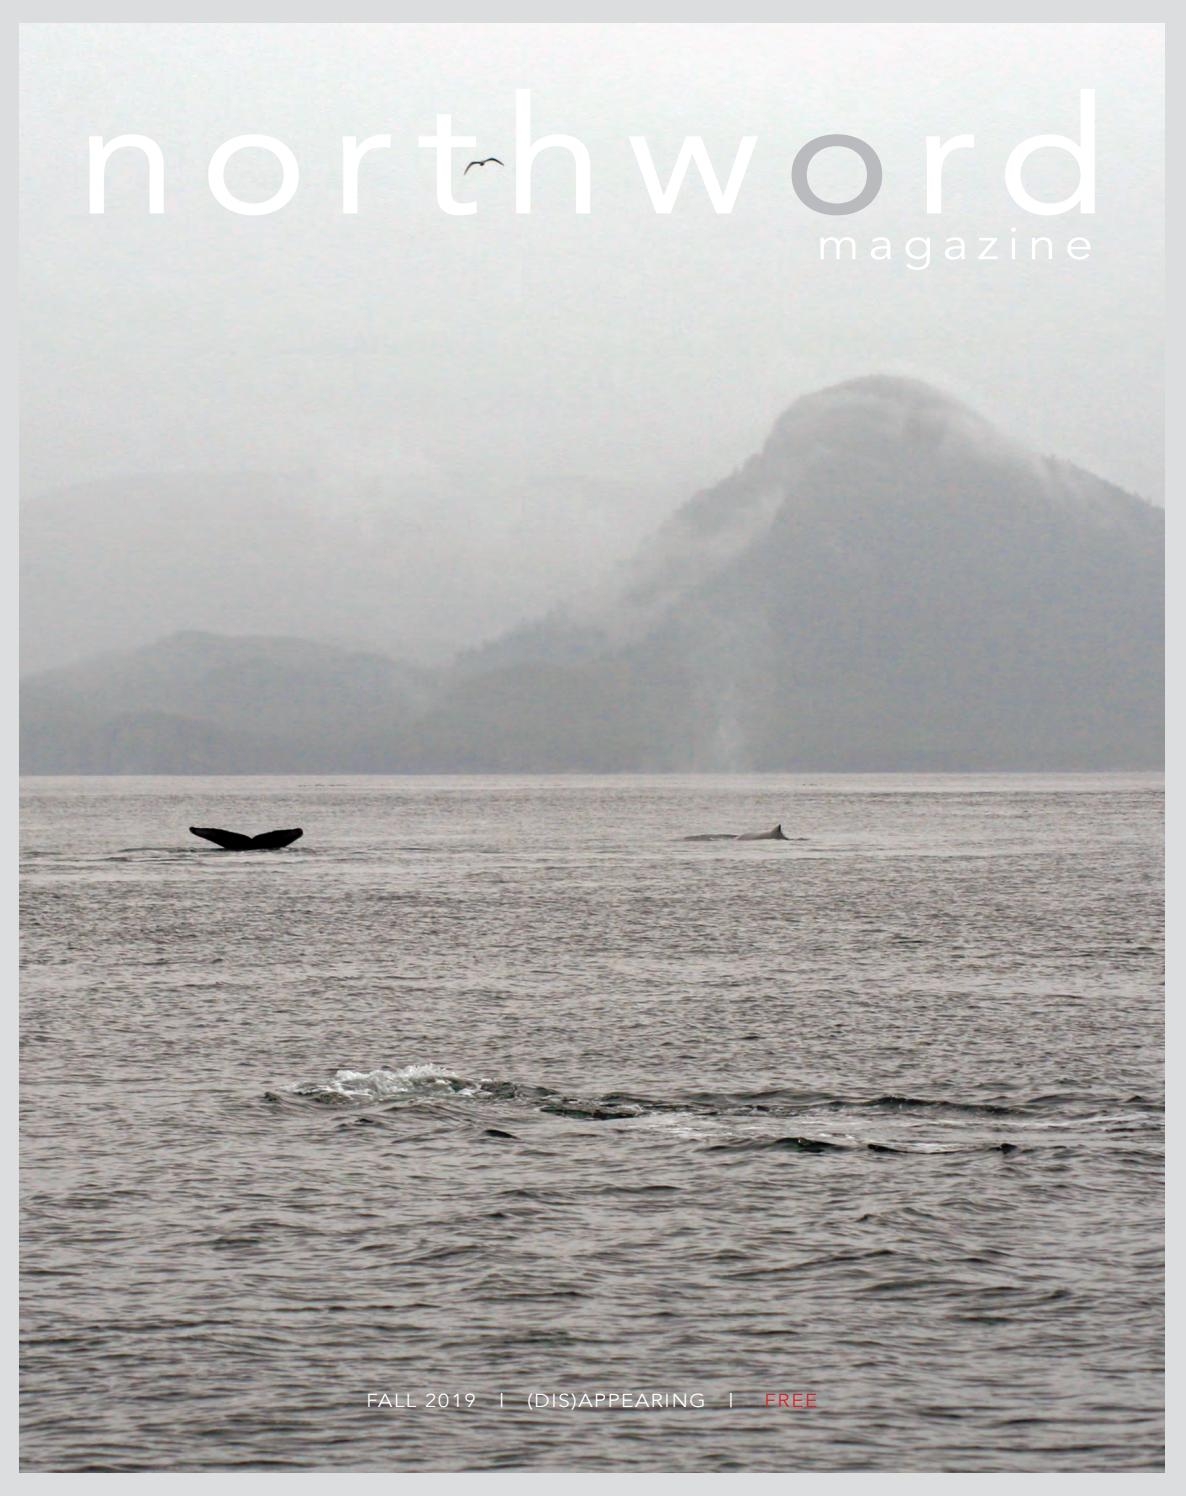 Northword Fall 2019 The Dis appearing Issue by Northword